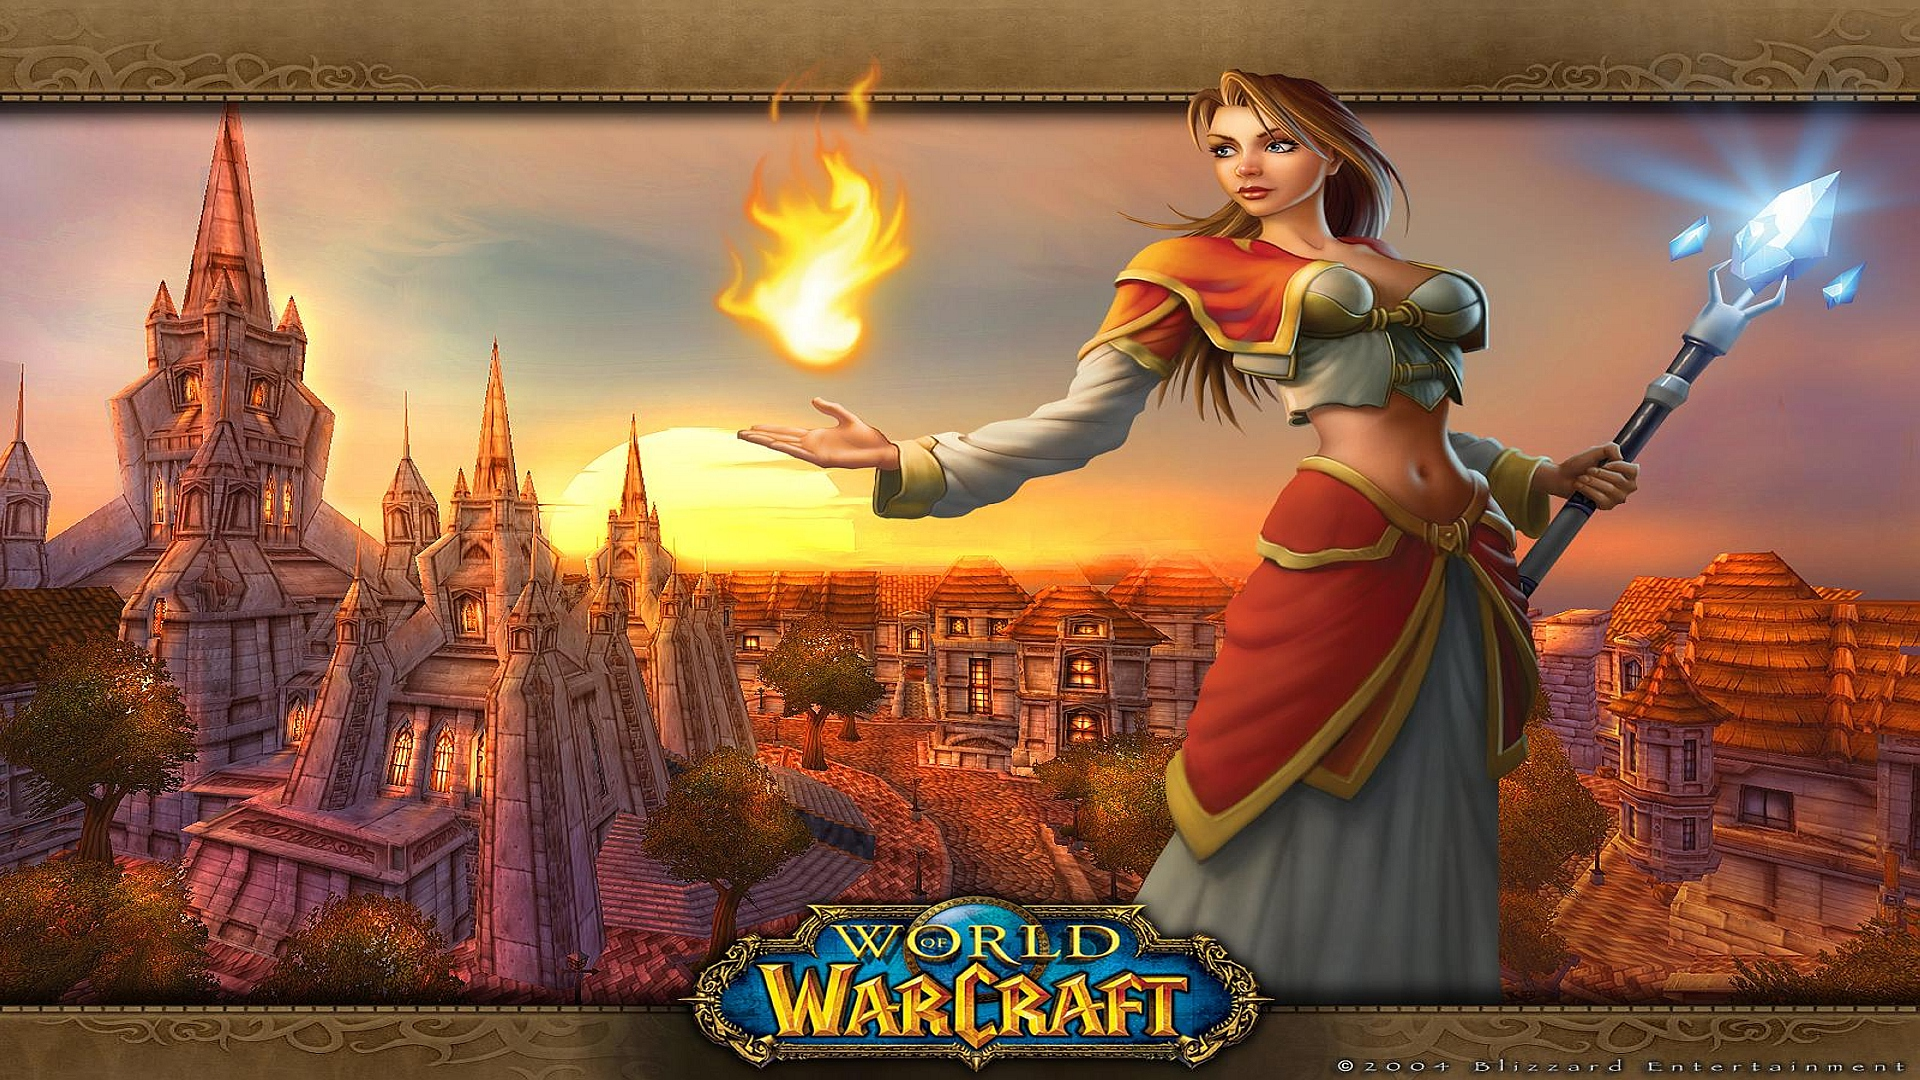 World of Warcraft Girl wallpaper